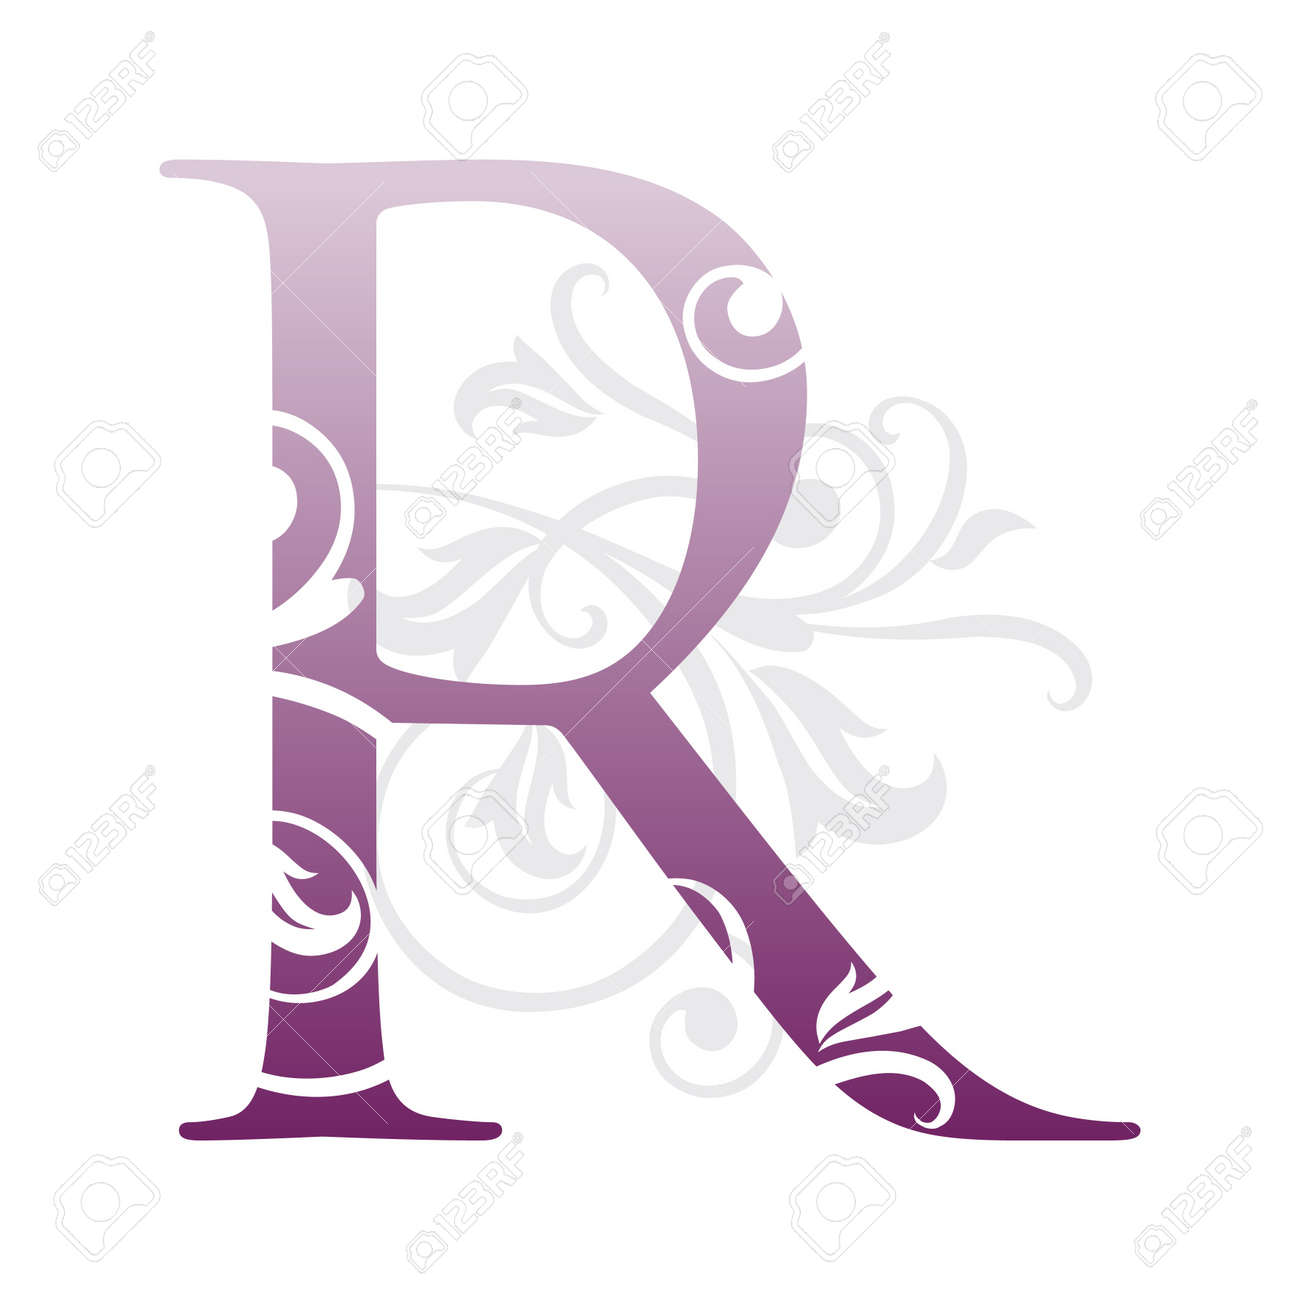 Letter r typography royalty free cliparts vectors and stock letter r typography stock vector 7923892 altavistaventures Image collections